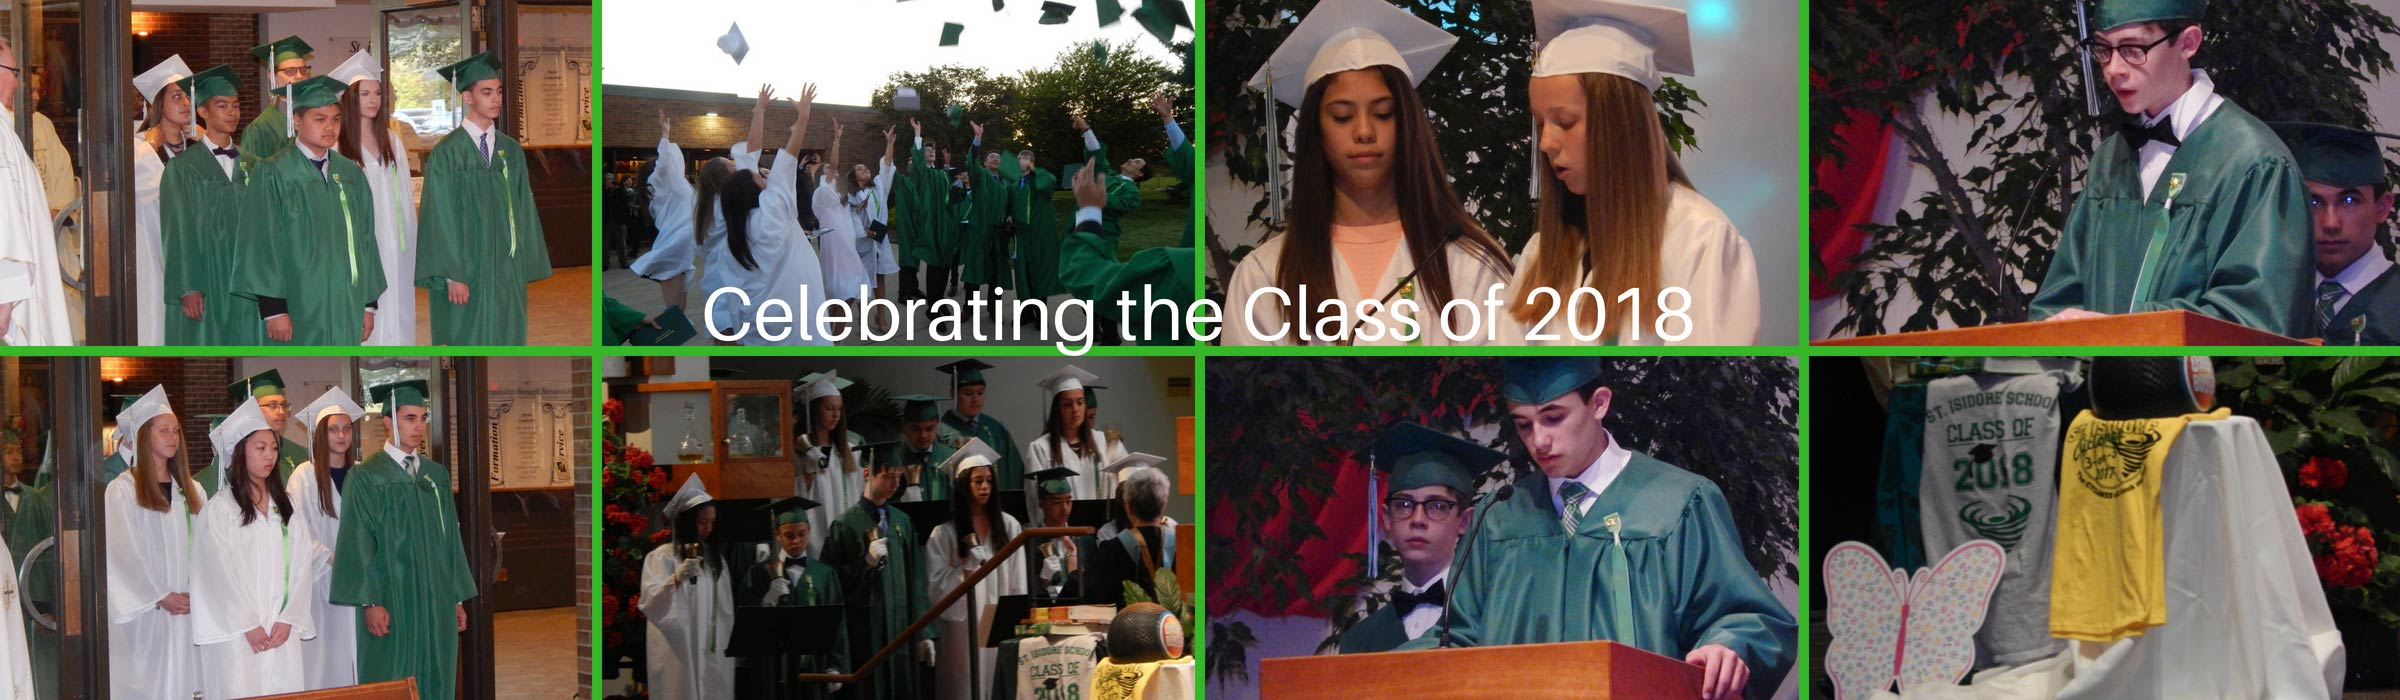 Celebrating-the-Class-of-2018